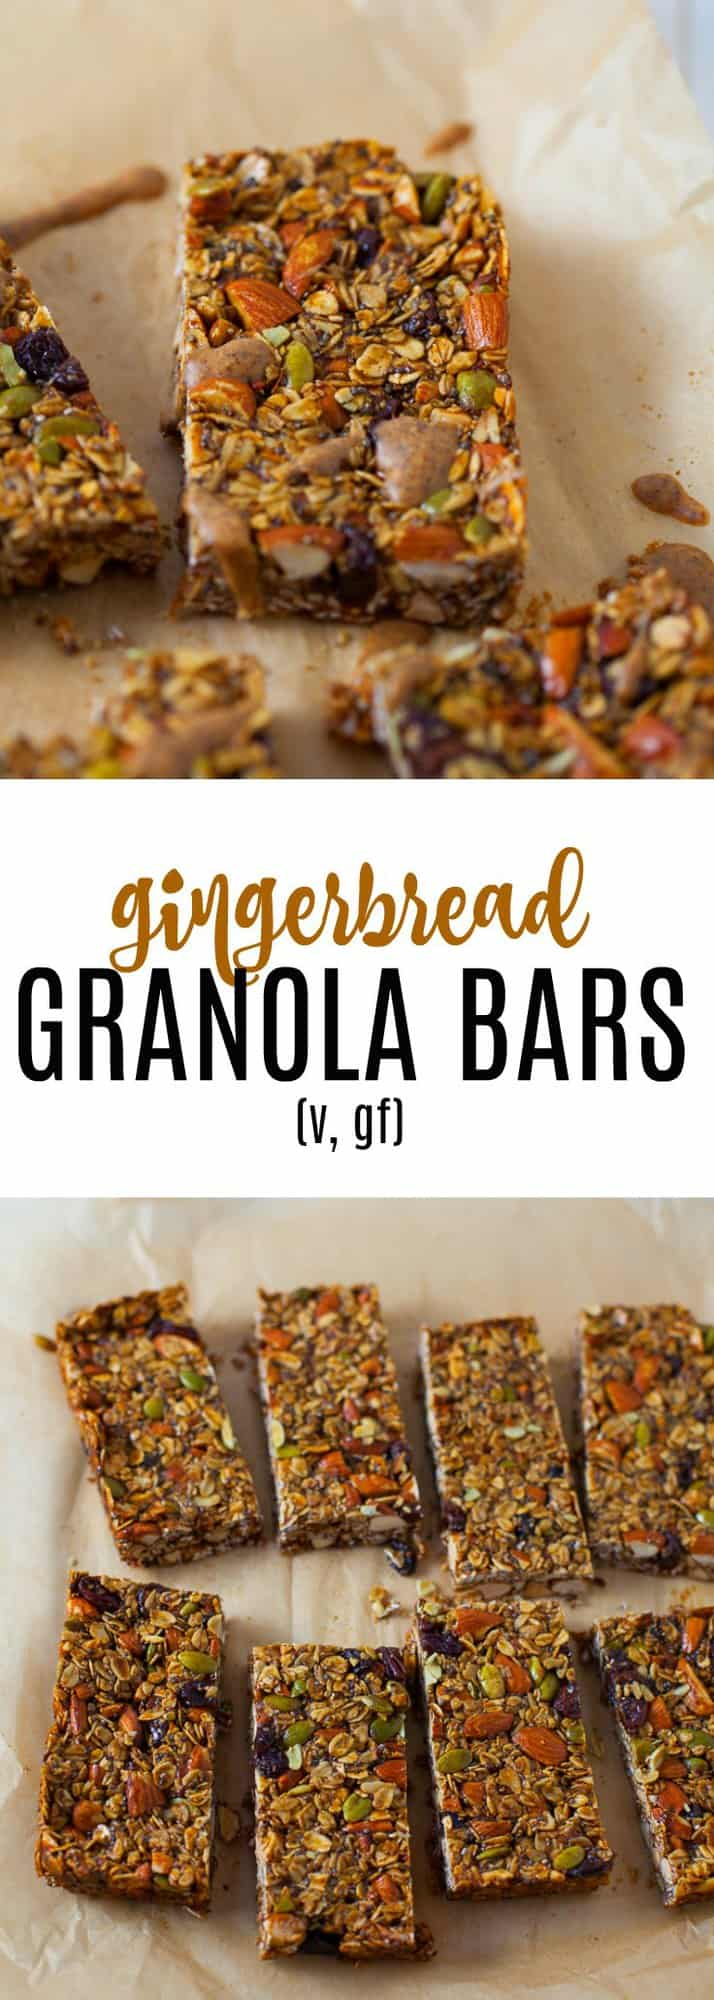 The perfect holiday snack to nosh on this season, these homemade gingerbread granola bars are full of holiday spice and nourishing ingredients that are sure to satisfy!